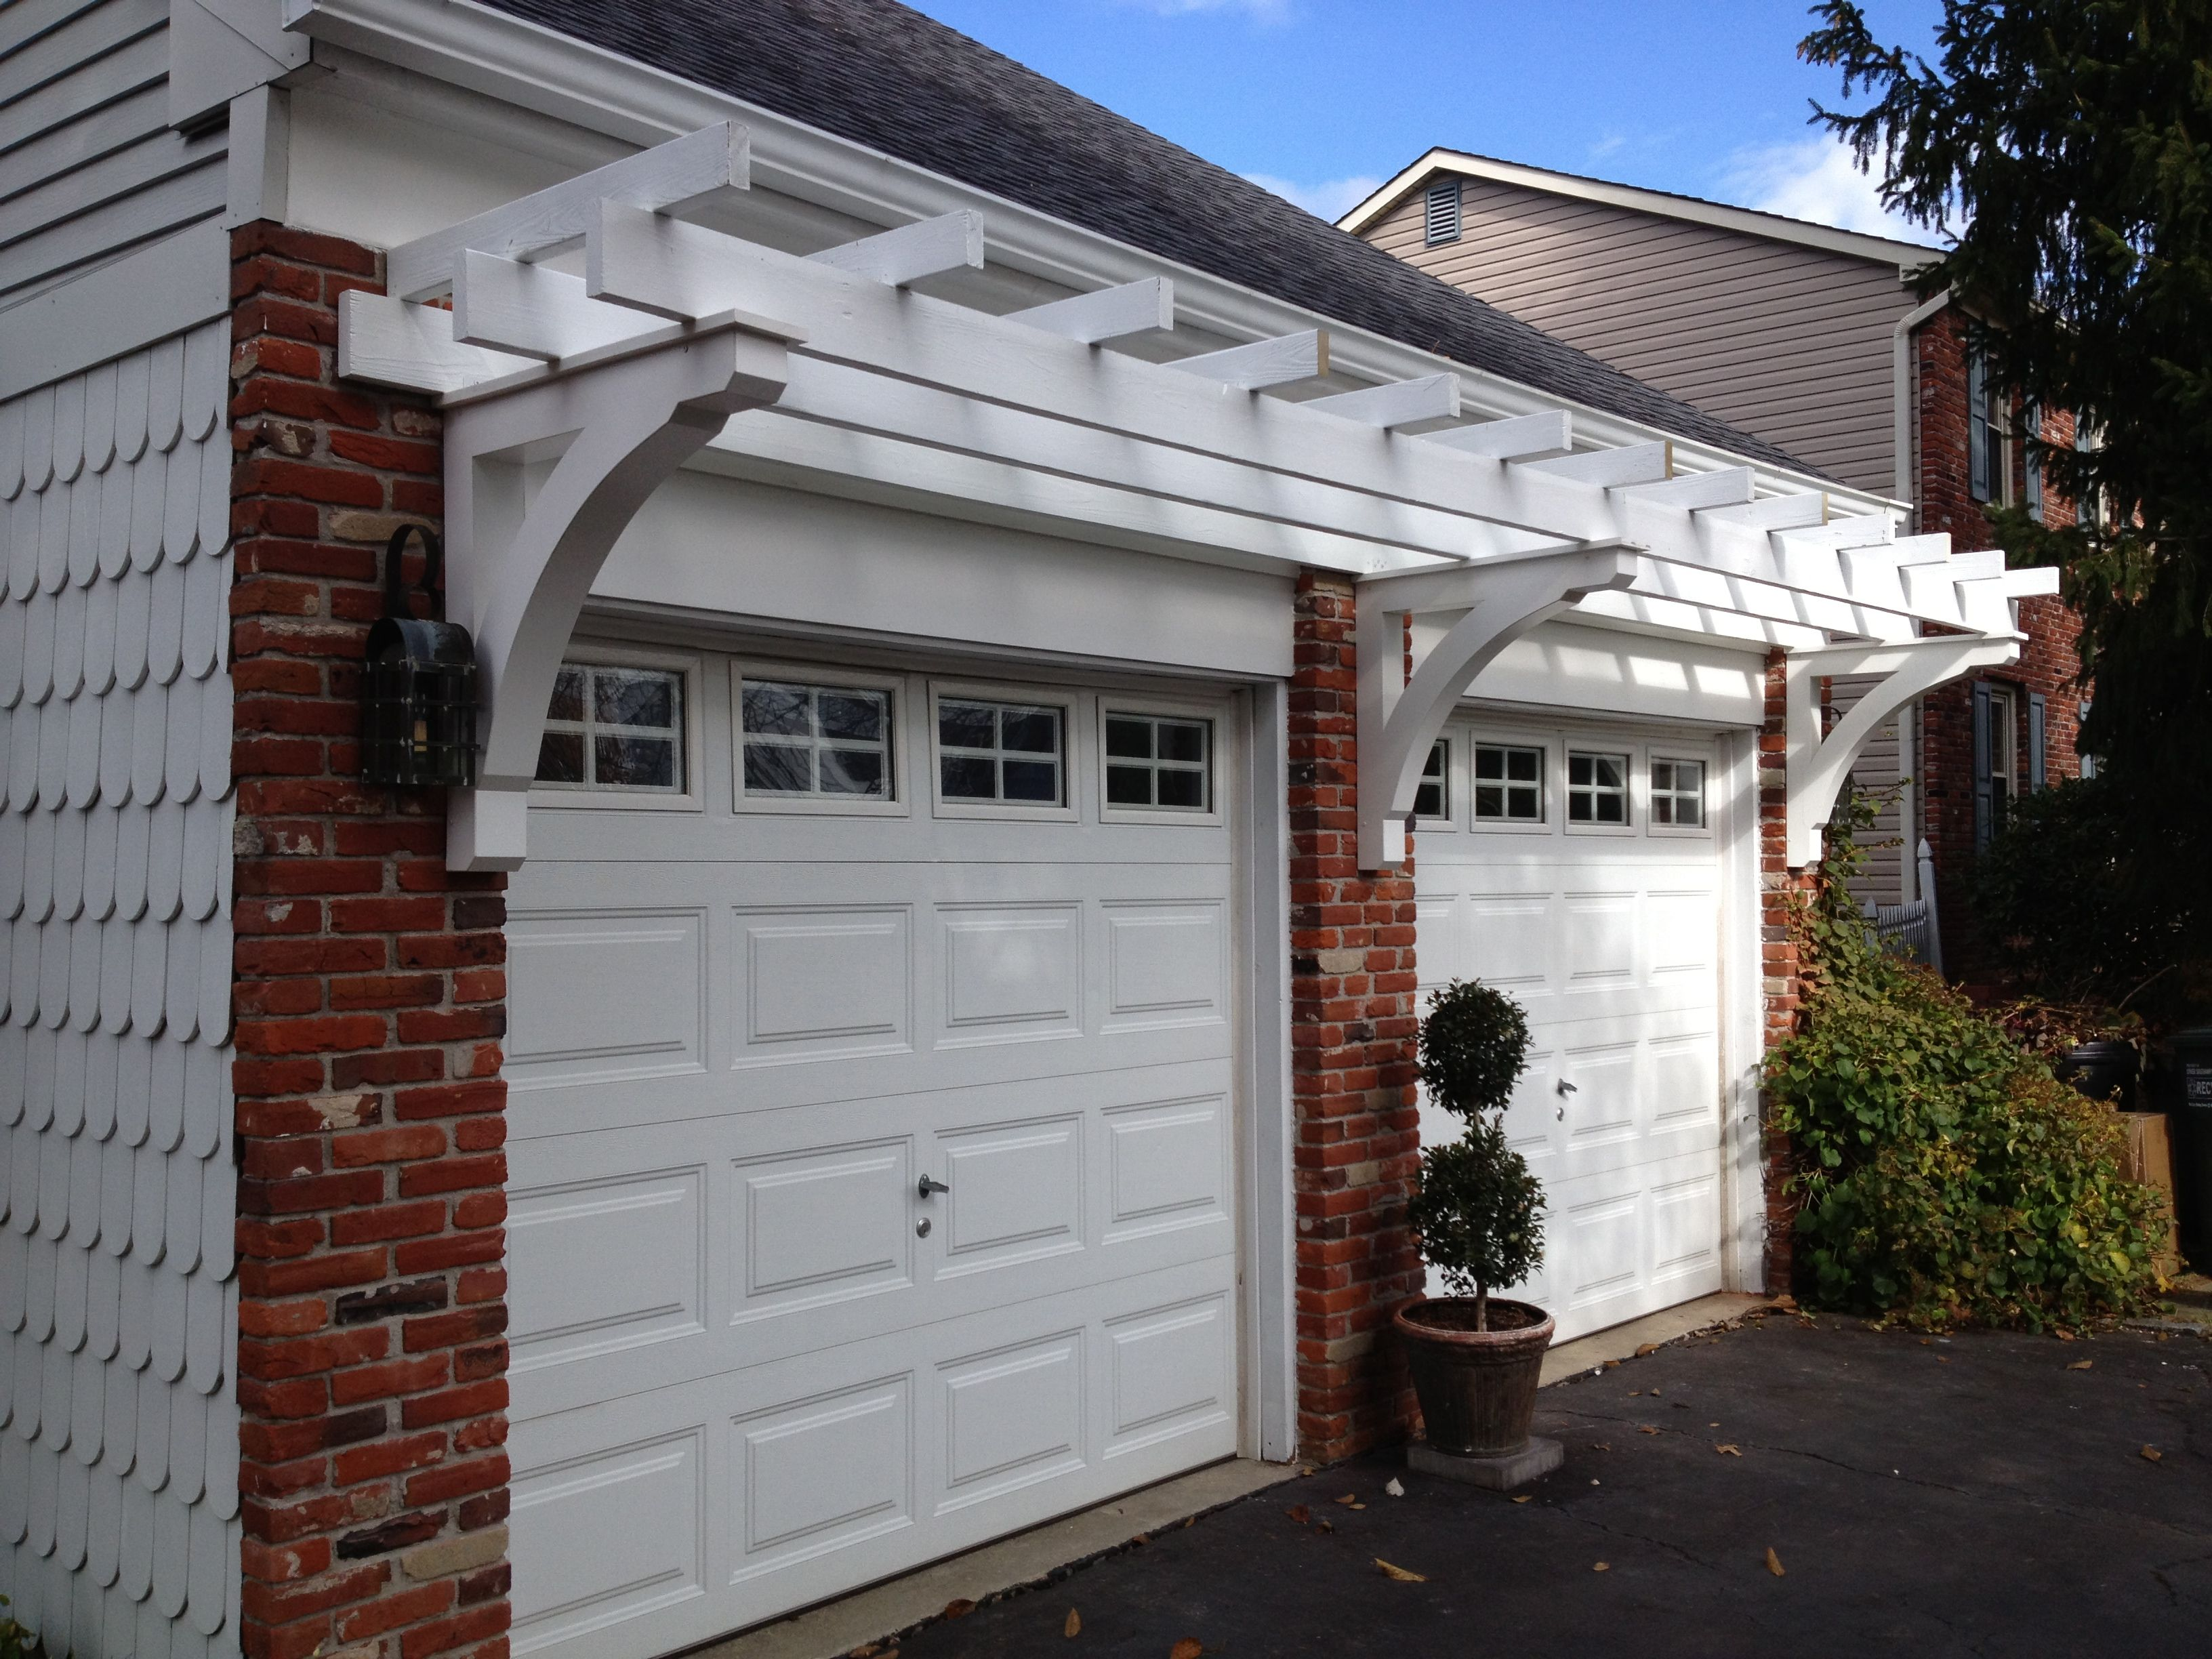 Pergola over garage door gallery photos diy ideas for Attached garage kits